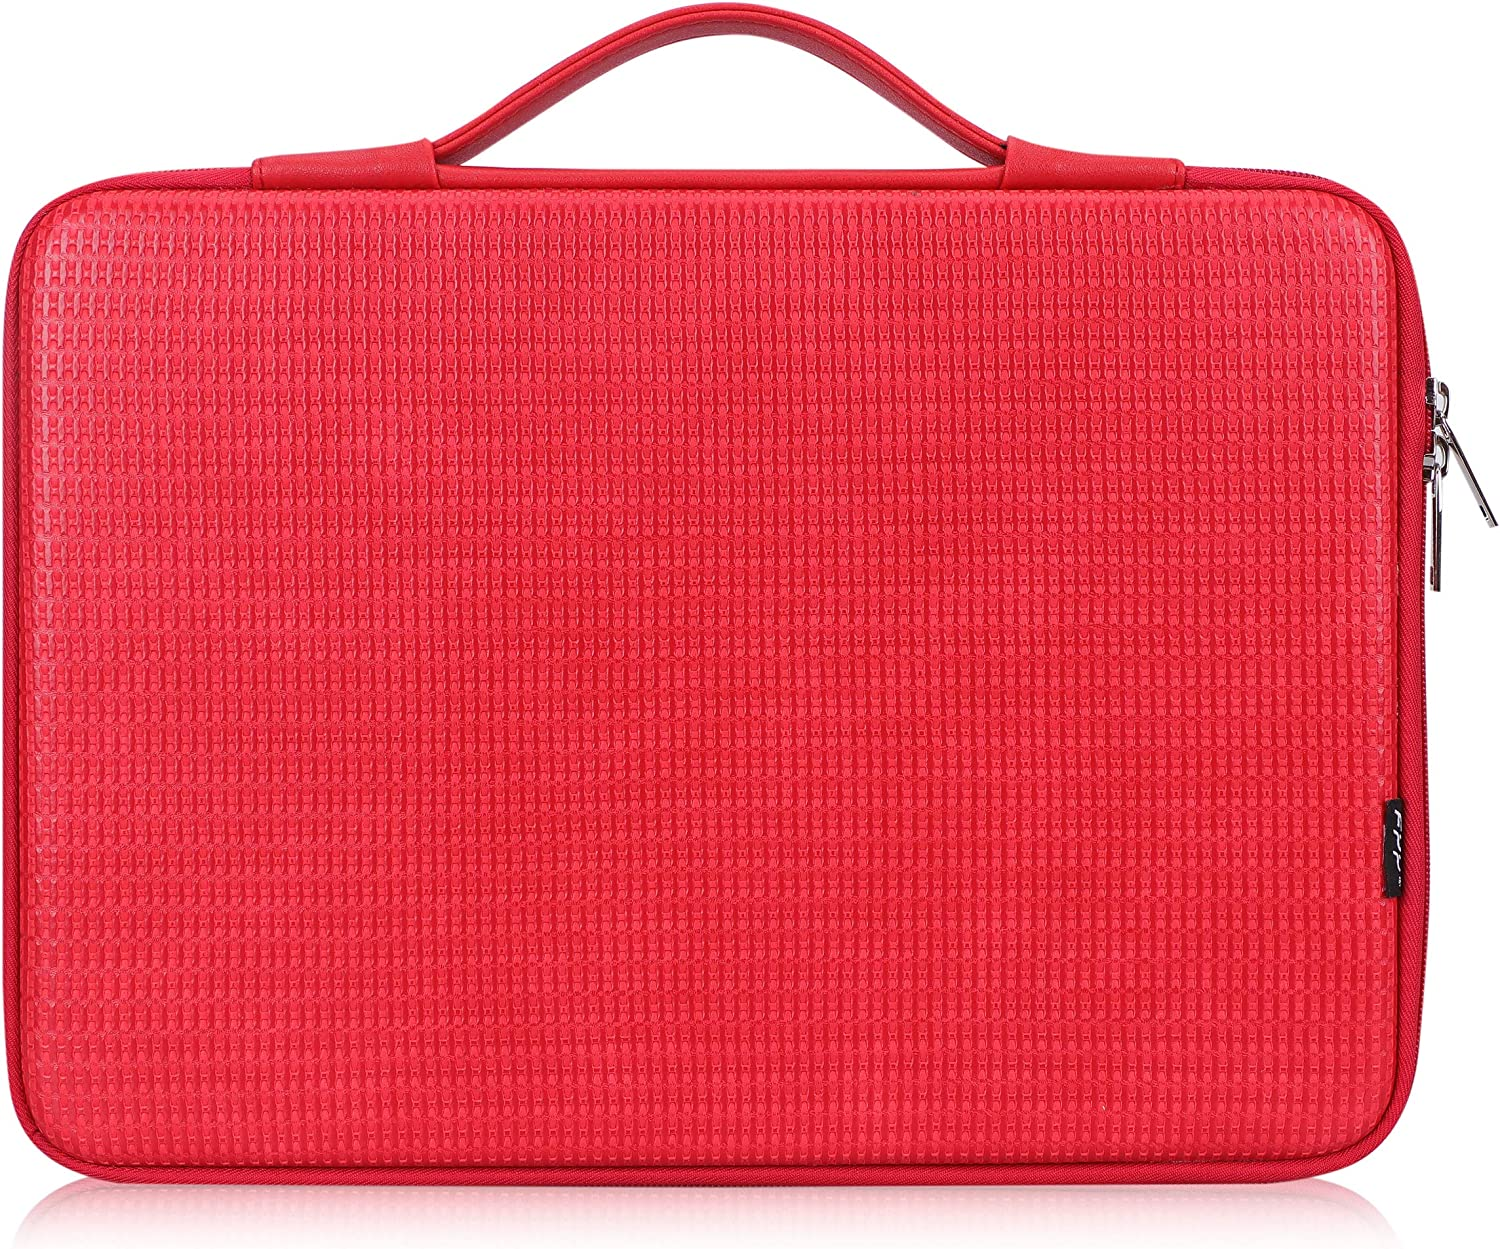 "FYY 13.5""-15"" [Waterproof Leather] [Solid Hard Shape] Laptop Sleeve Bag Case with Inner Tuck Net Fits All 13.5""-15"" Inches laptops, MacBook Pro, Notebook, Surface Book Red"